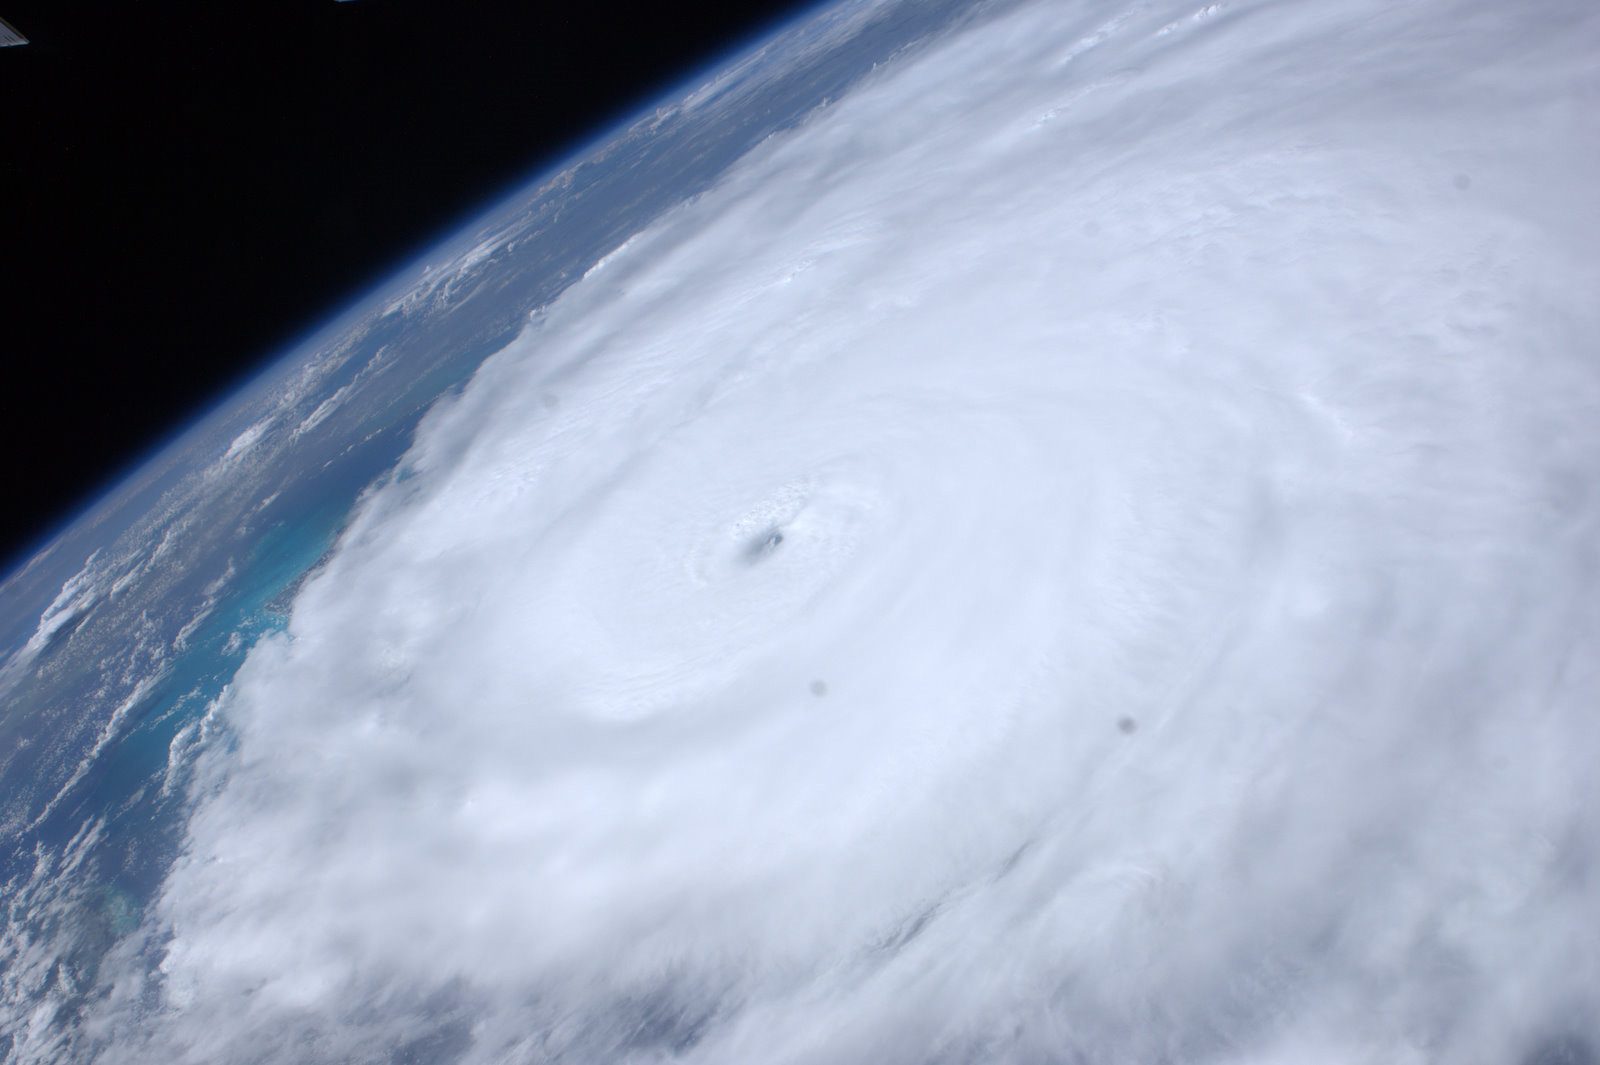 Hurricane Irene Looks 'Terrifying' From Space, Astronaut Says